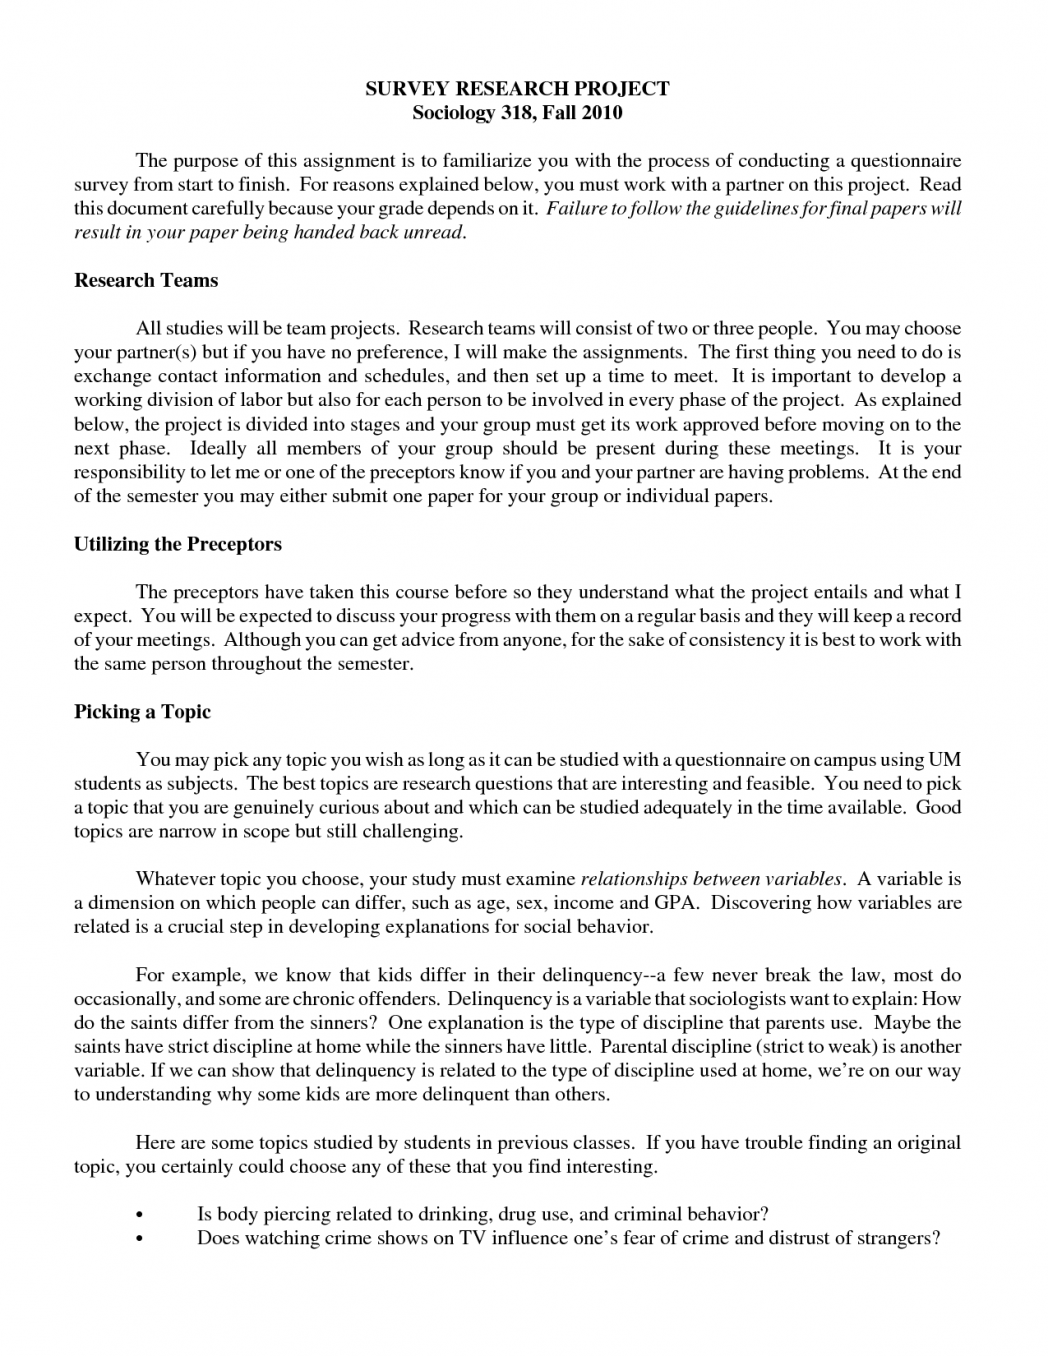 007 What Is Hook In An Essay How To Write For Research Paper Hooks Bcl12 College 1048x1356 Top A Good About The Crucible Odysseus Leadership Full